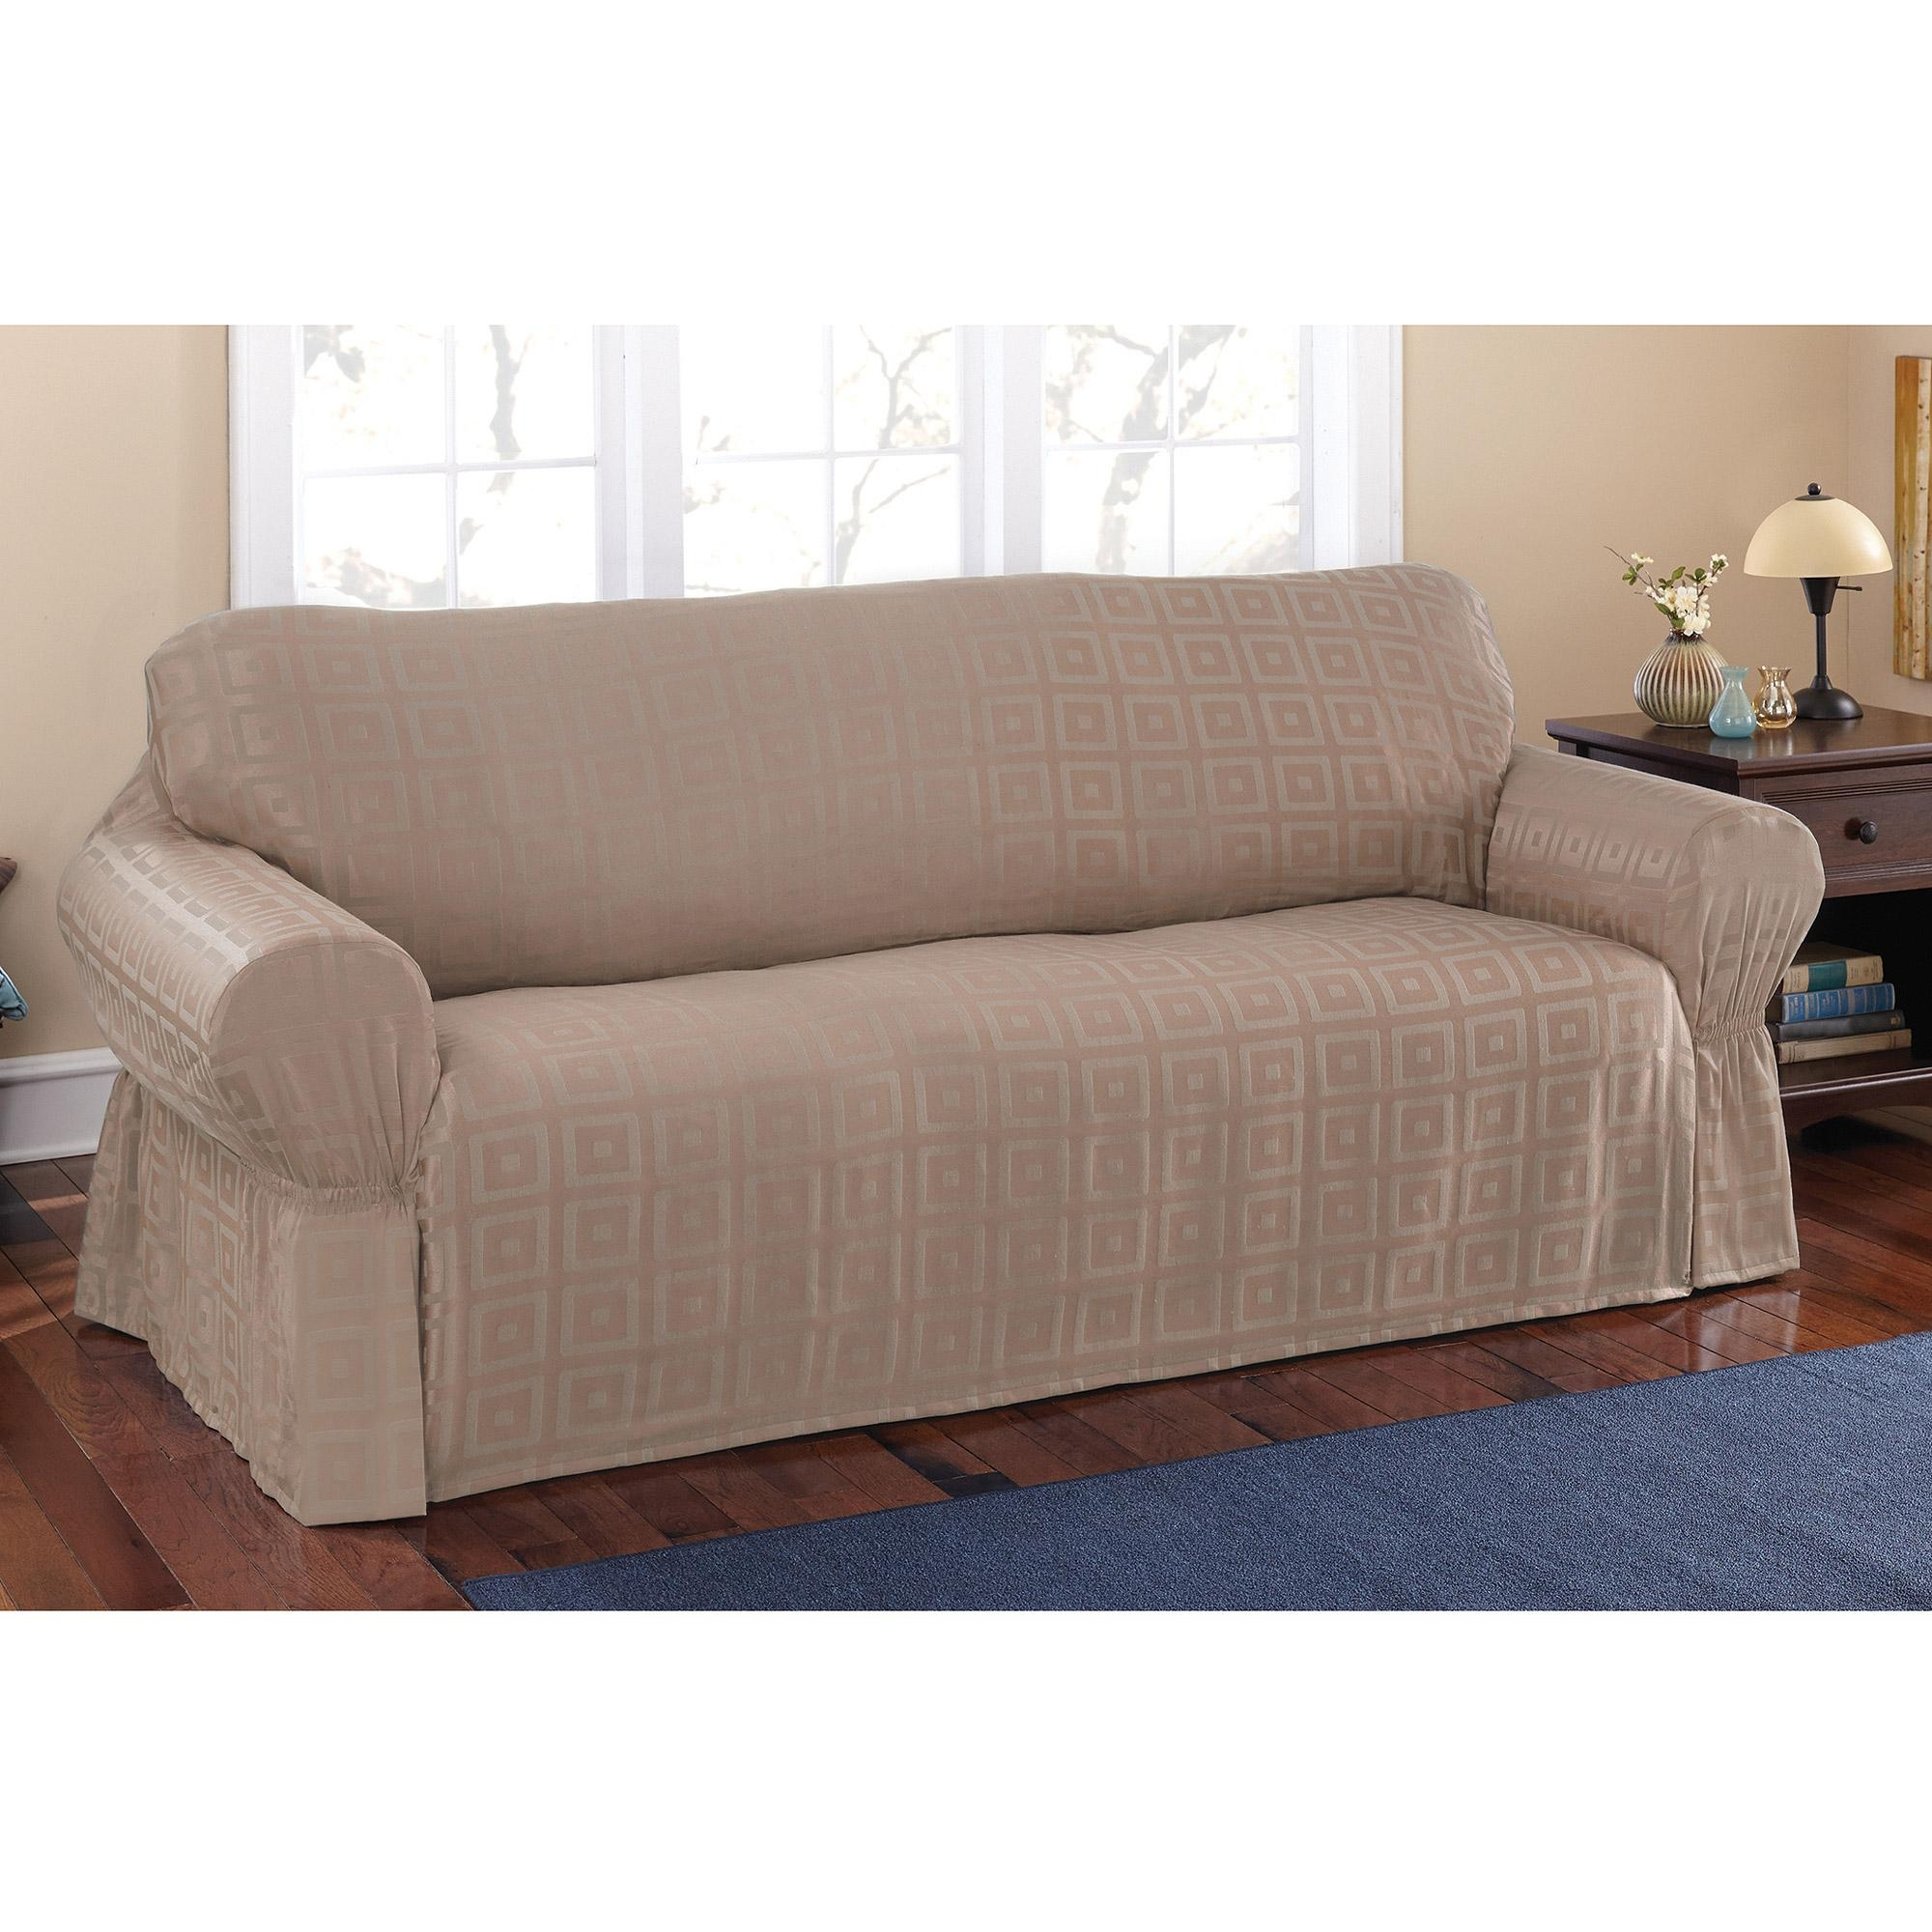 Mainstays Sherwood Slipcover Sofa – Walmart Throughout Walmart Slipcovers For Sofas (Image 13 of 20)